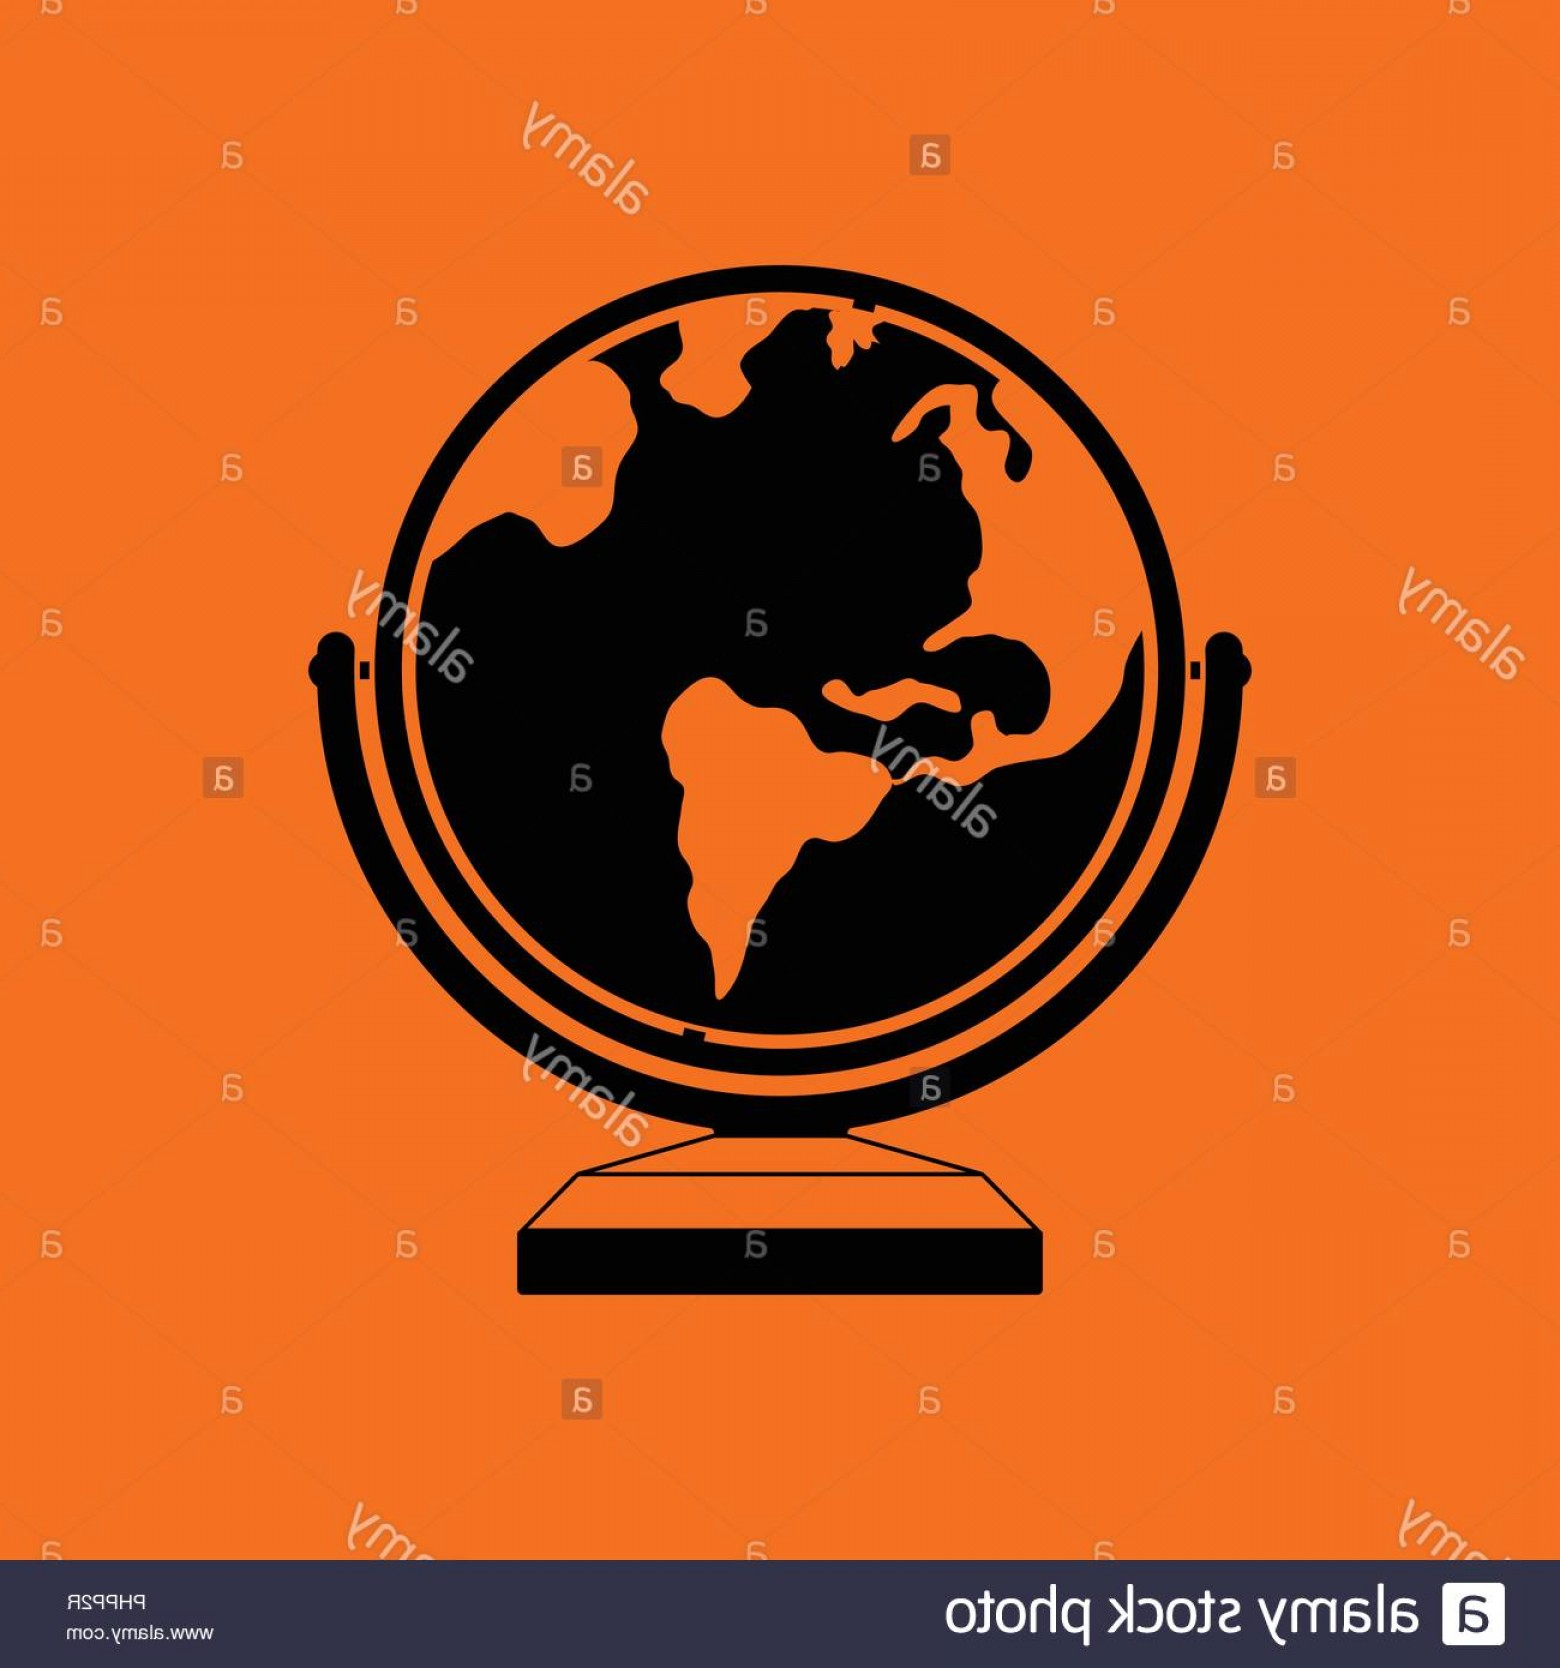 Abstract Vector Art Globe TV: Globe Icon Orange Background With Black Vector Illustration Image